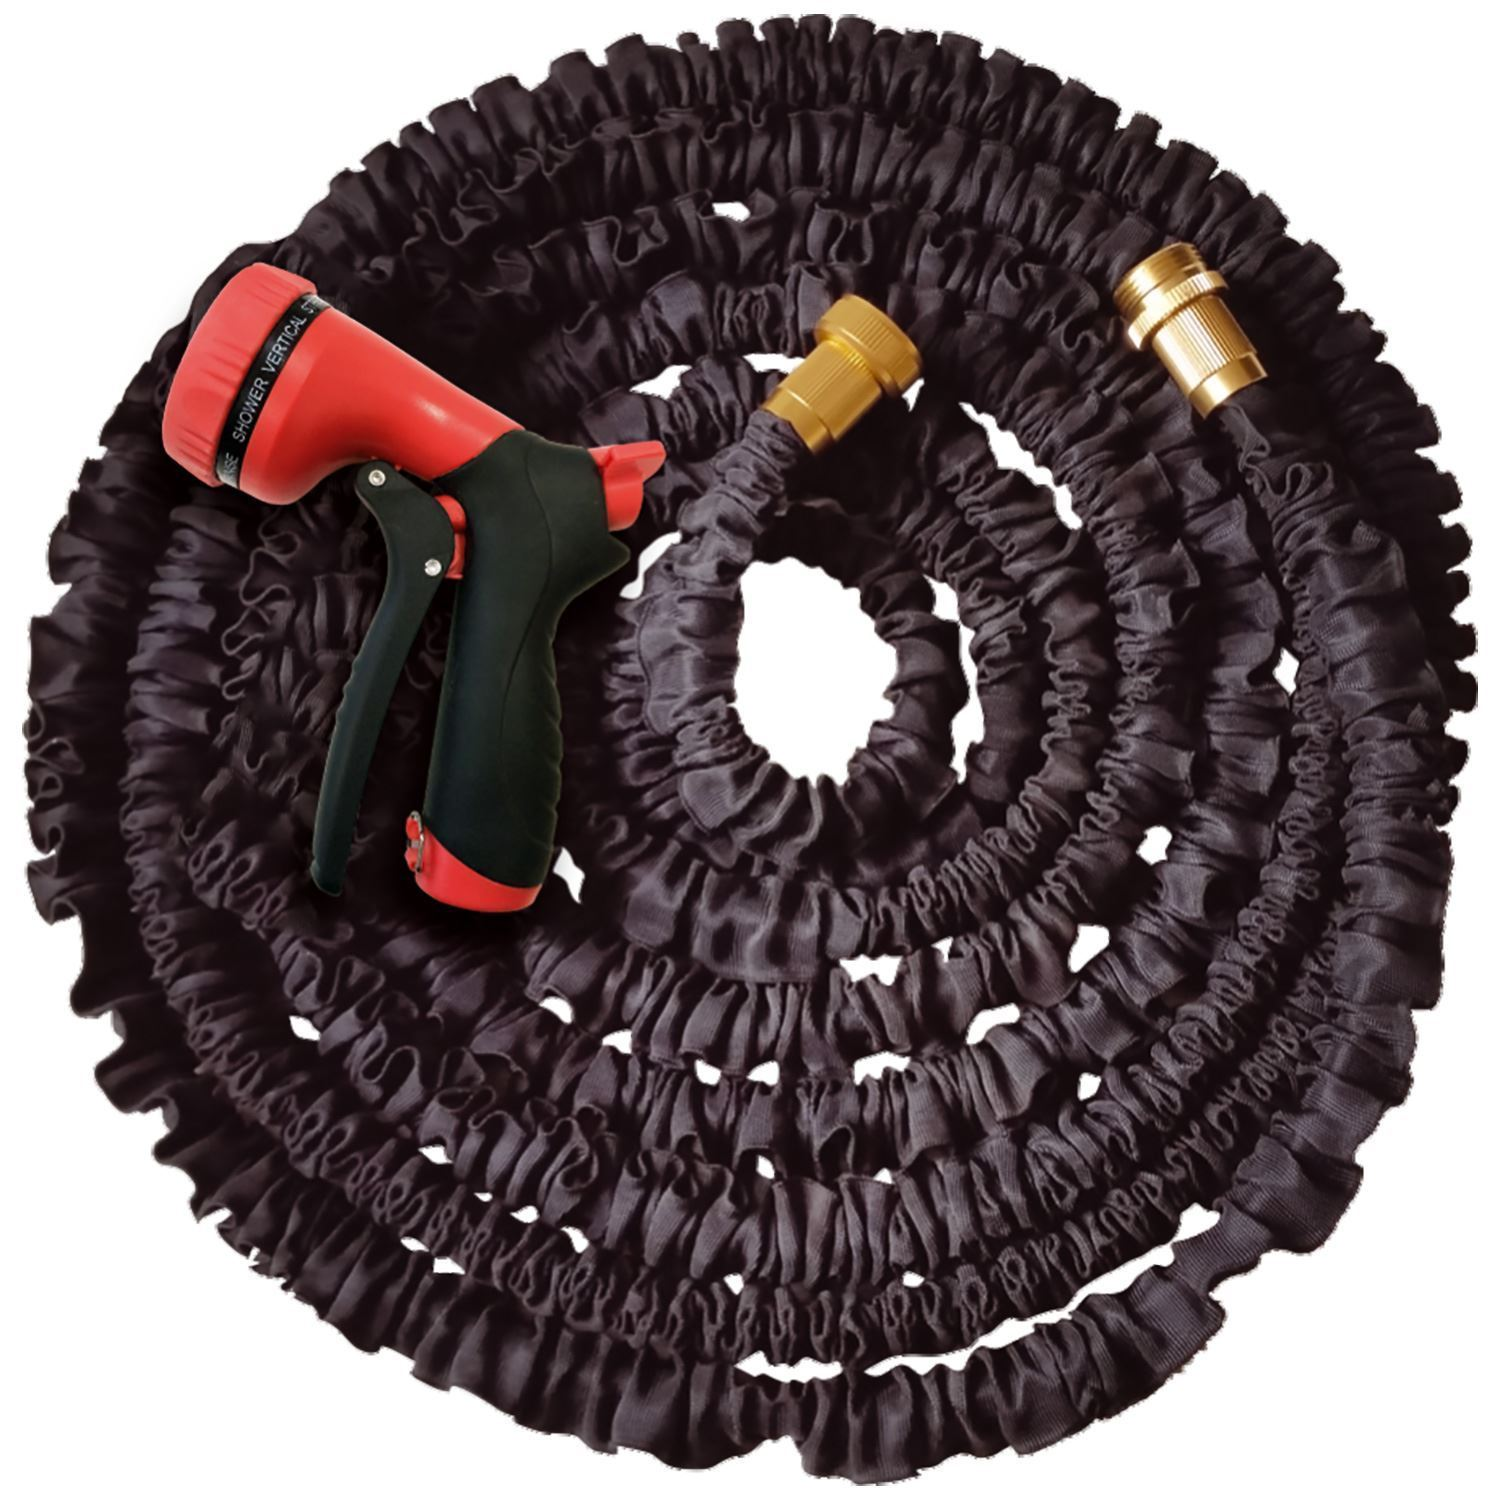 50ft 100ft 150ft Expandable Flexible Garden Hose Pipe Expanding Quality Fittings Ebay